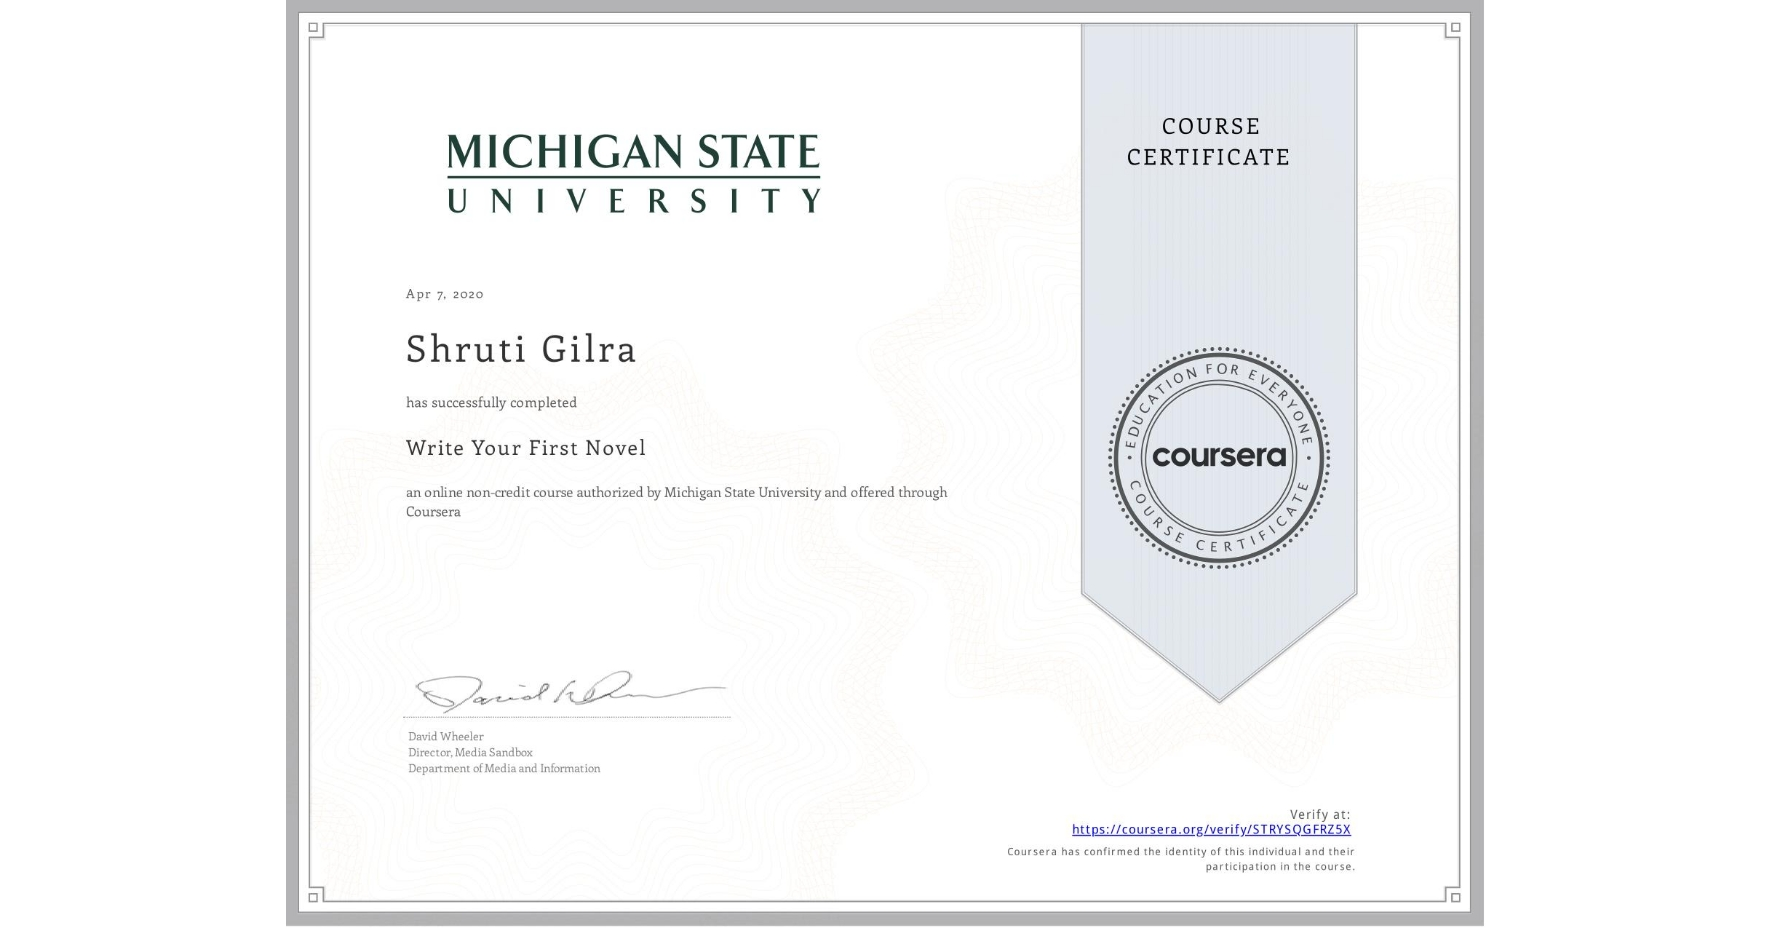 View certificate for Shruti Gilra, Write Your First Novel, an online non-credit course authorized by Michigan State University and offered through Coursera